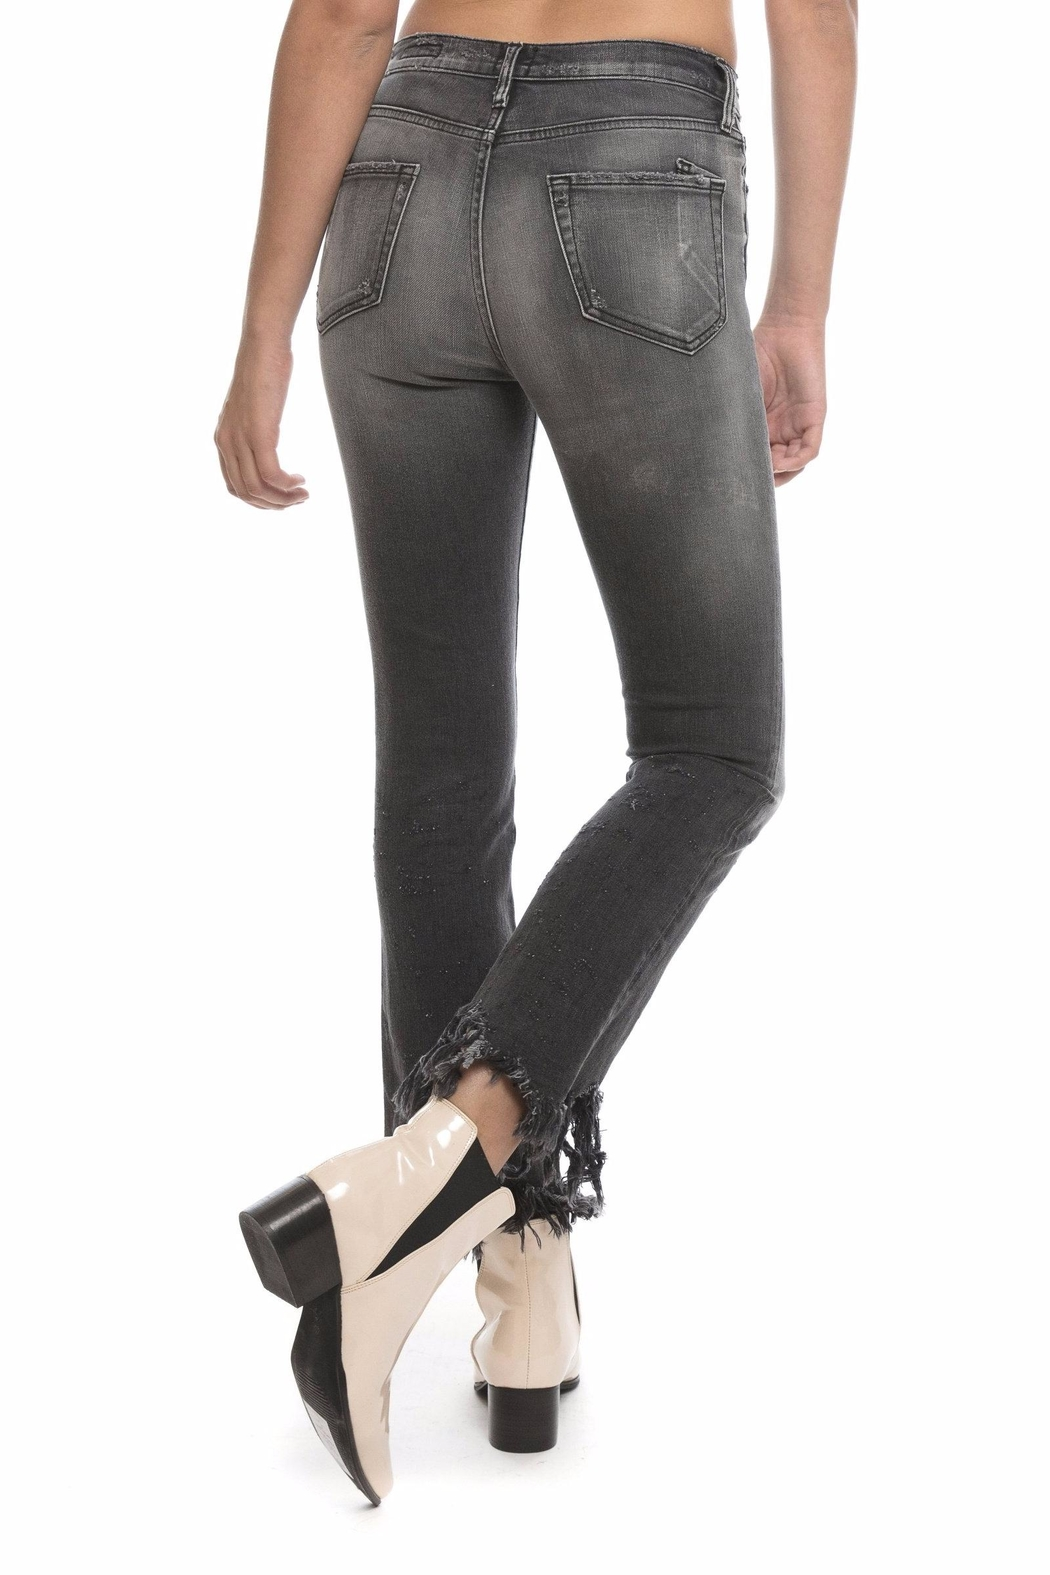 PRPS Biscayne Pricked Capri Jeans - Side Cropped Image